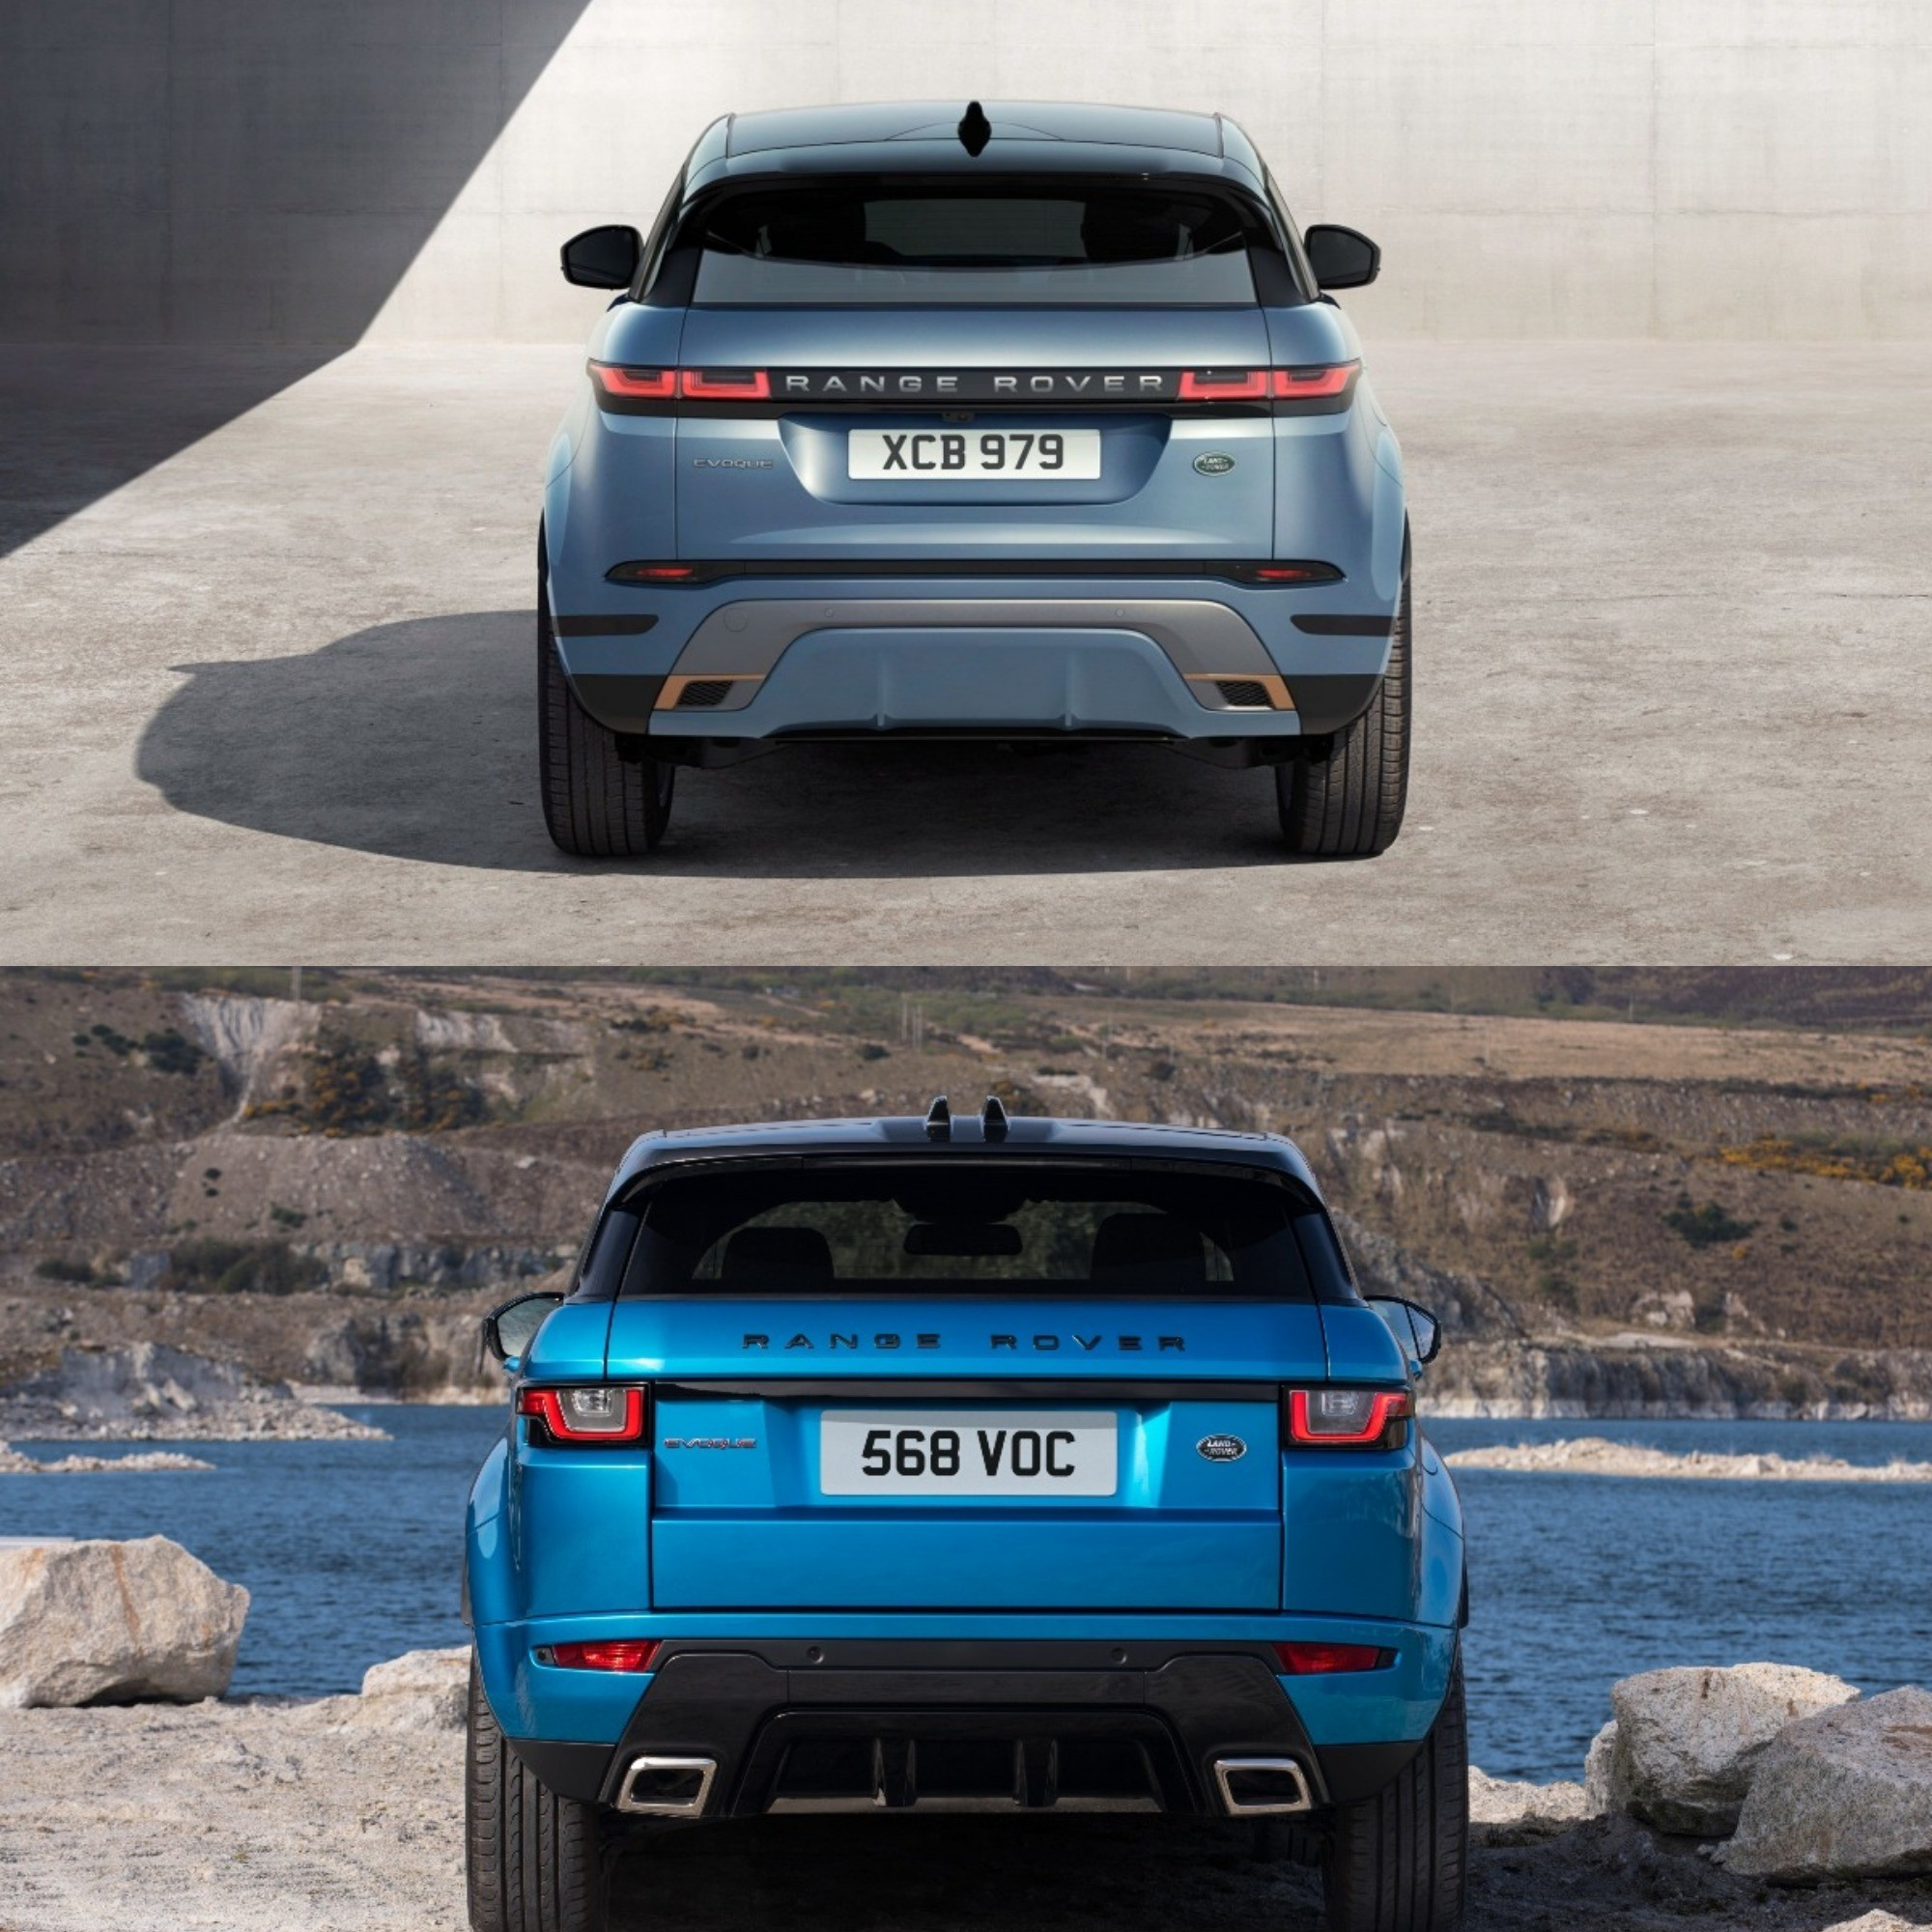 Photo Comparison: 2020 Range Rover Evoque Vs. 2015 Range